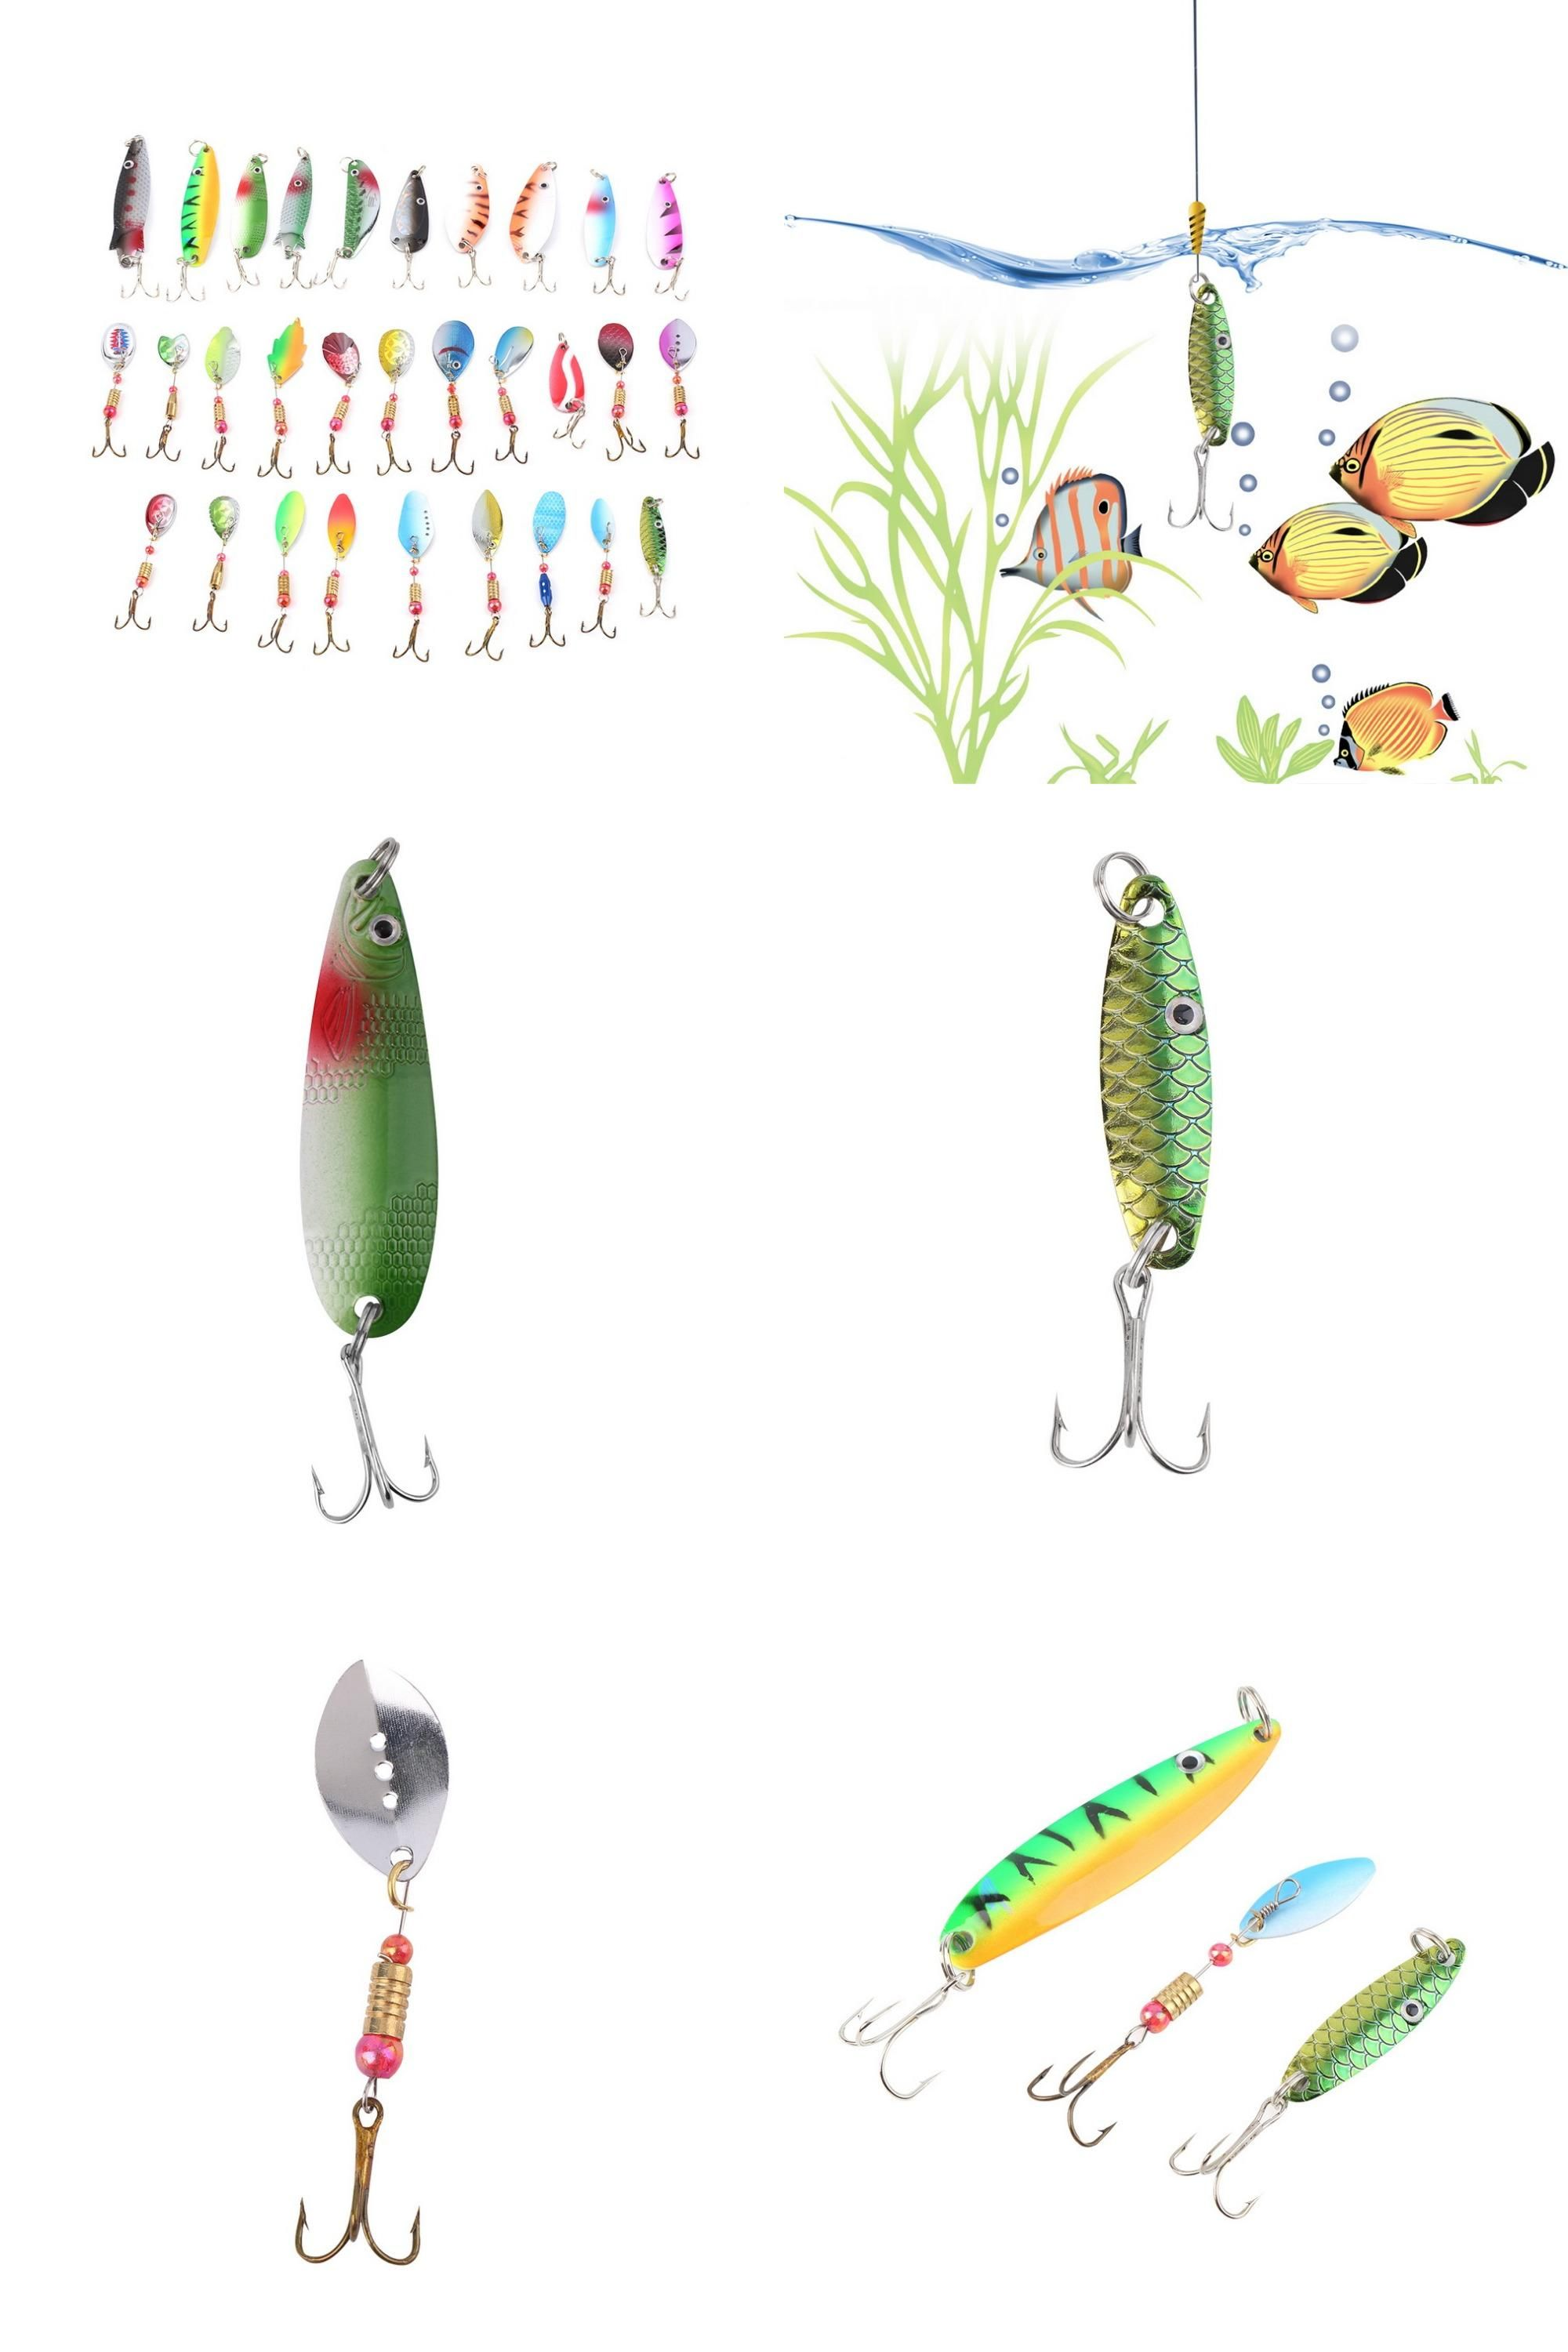 Visit To Buy Good Deal Fishing Lure 30pcs Lot 3g 7g Minnow Popper Mini Laser